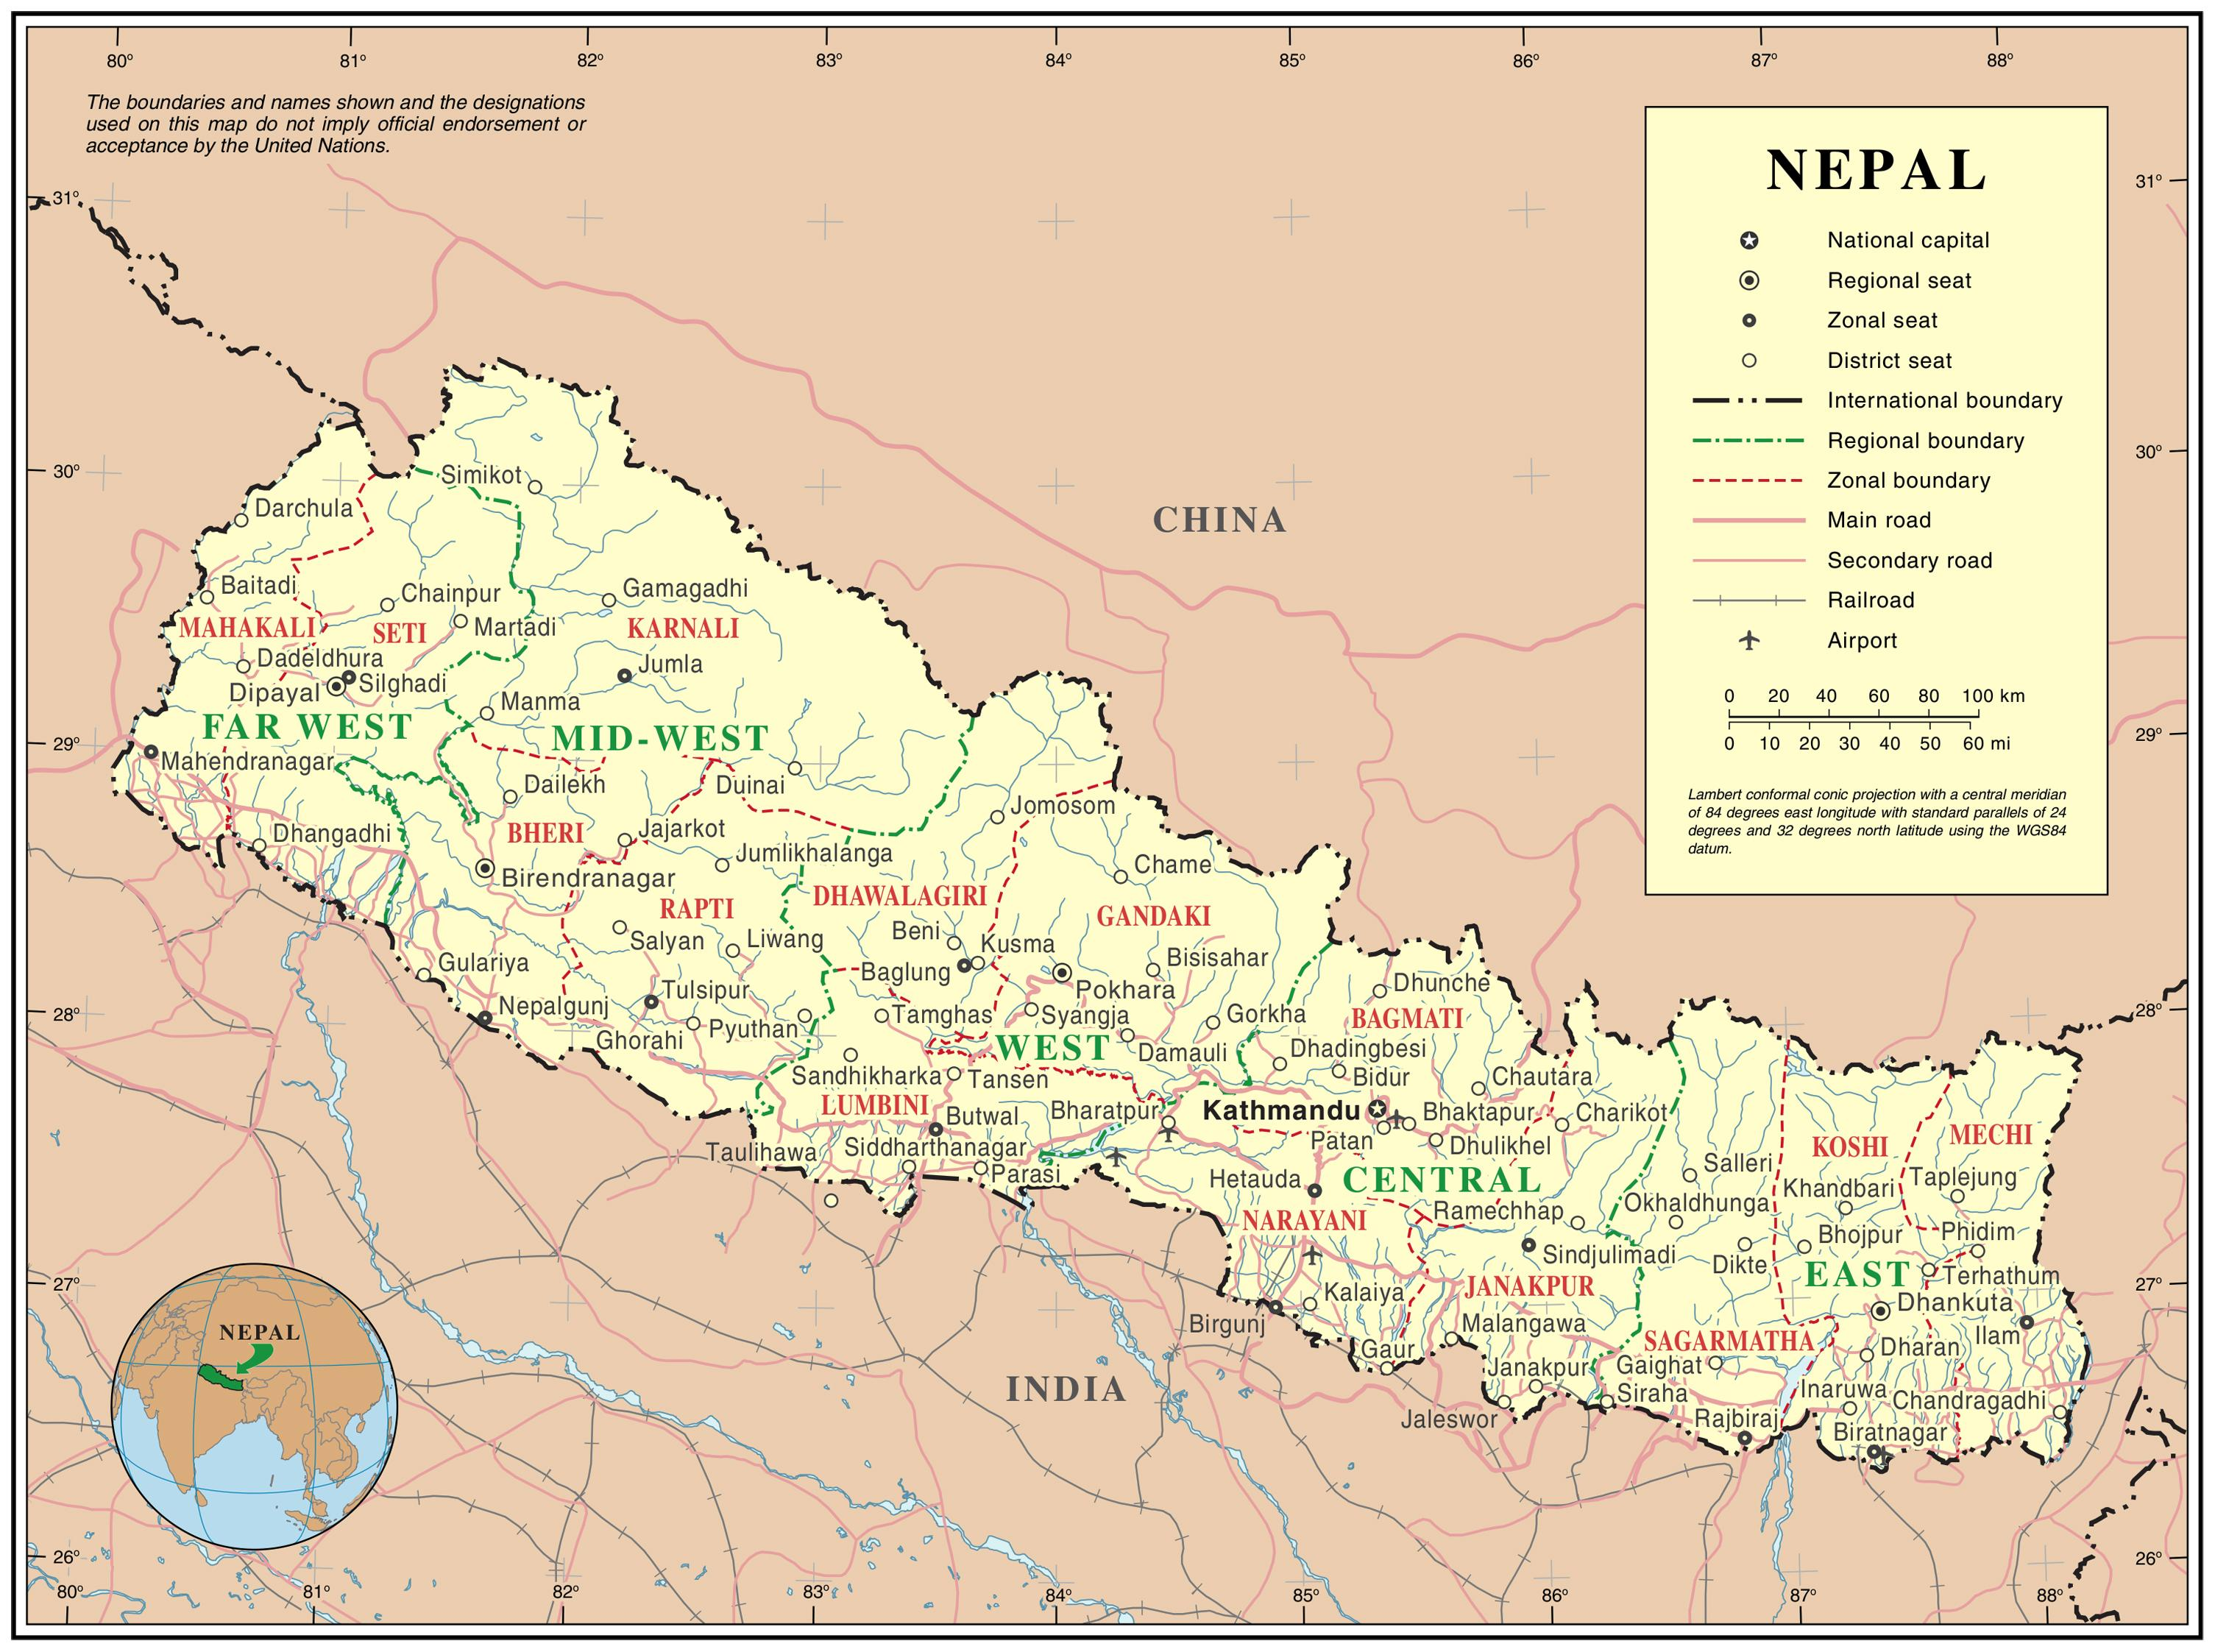 Nepal Roads Map India Nepal Border Road Map Southern Asia Asia